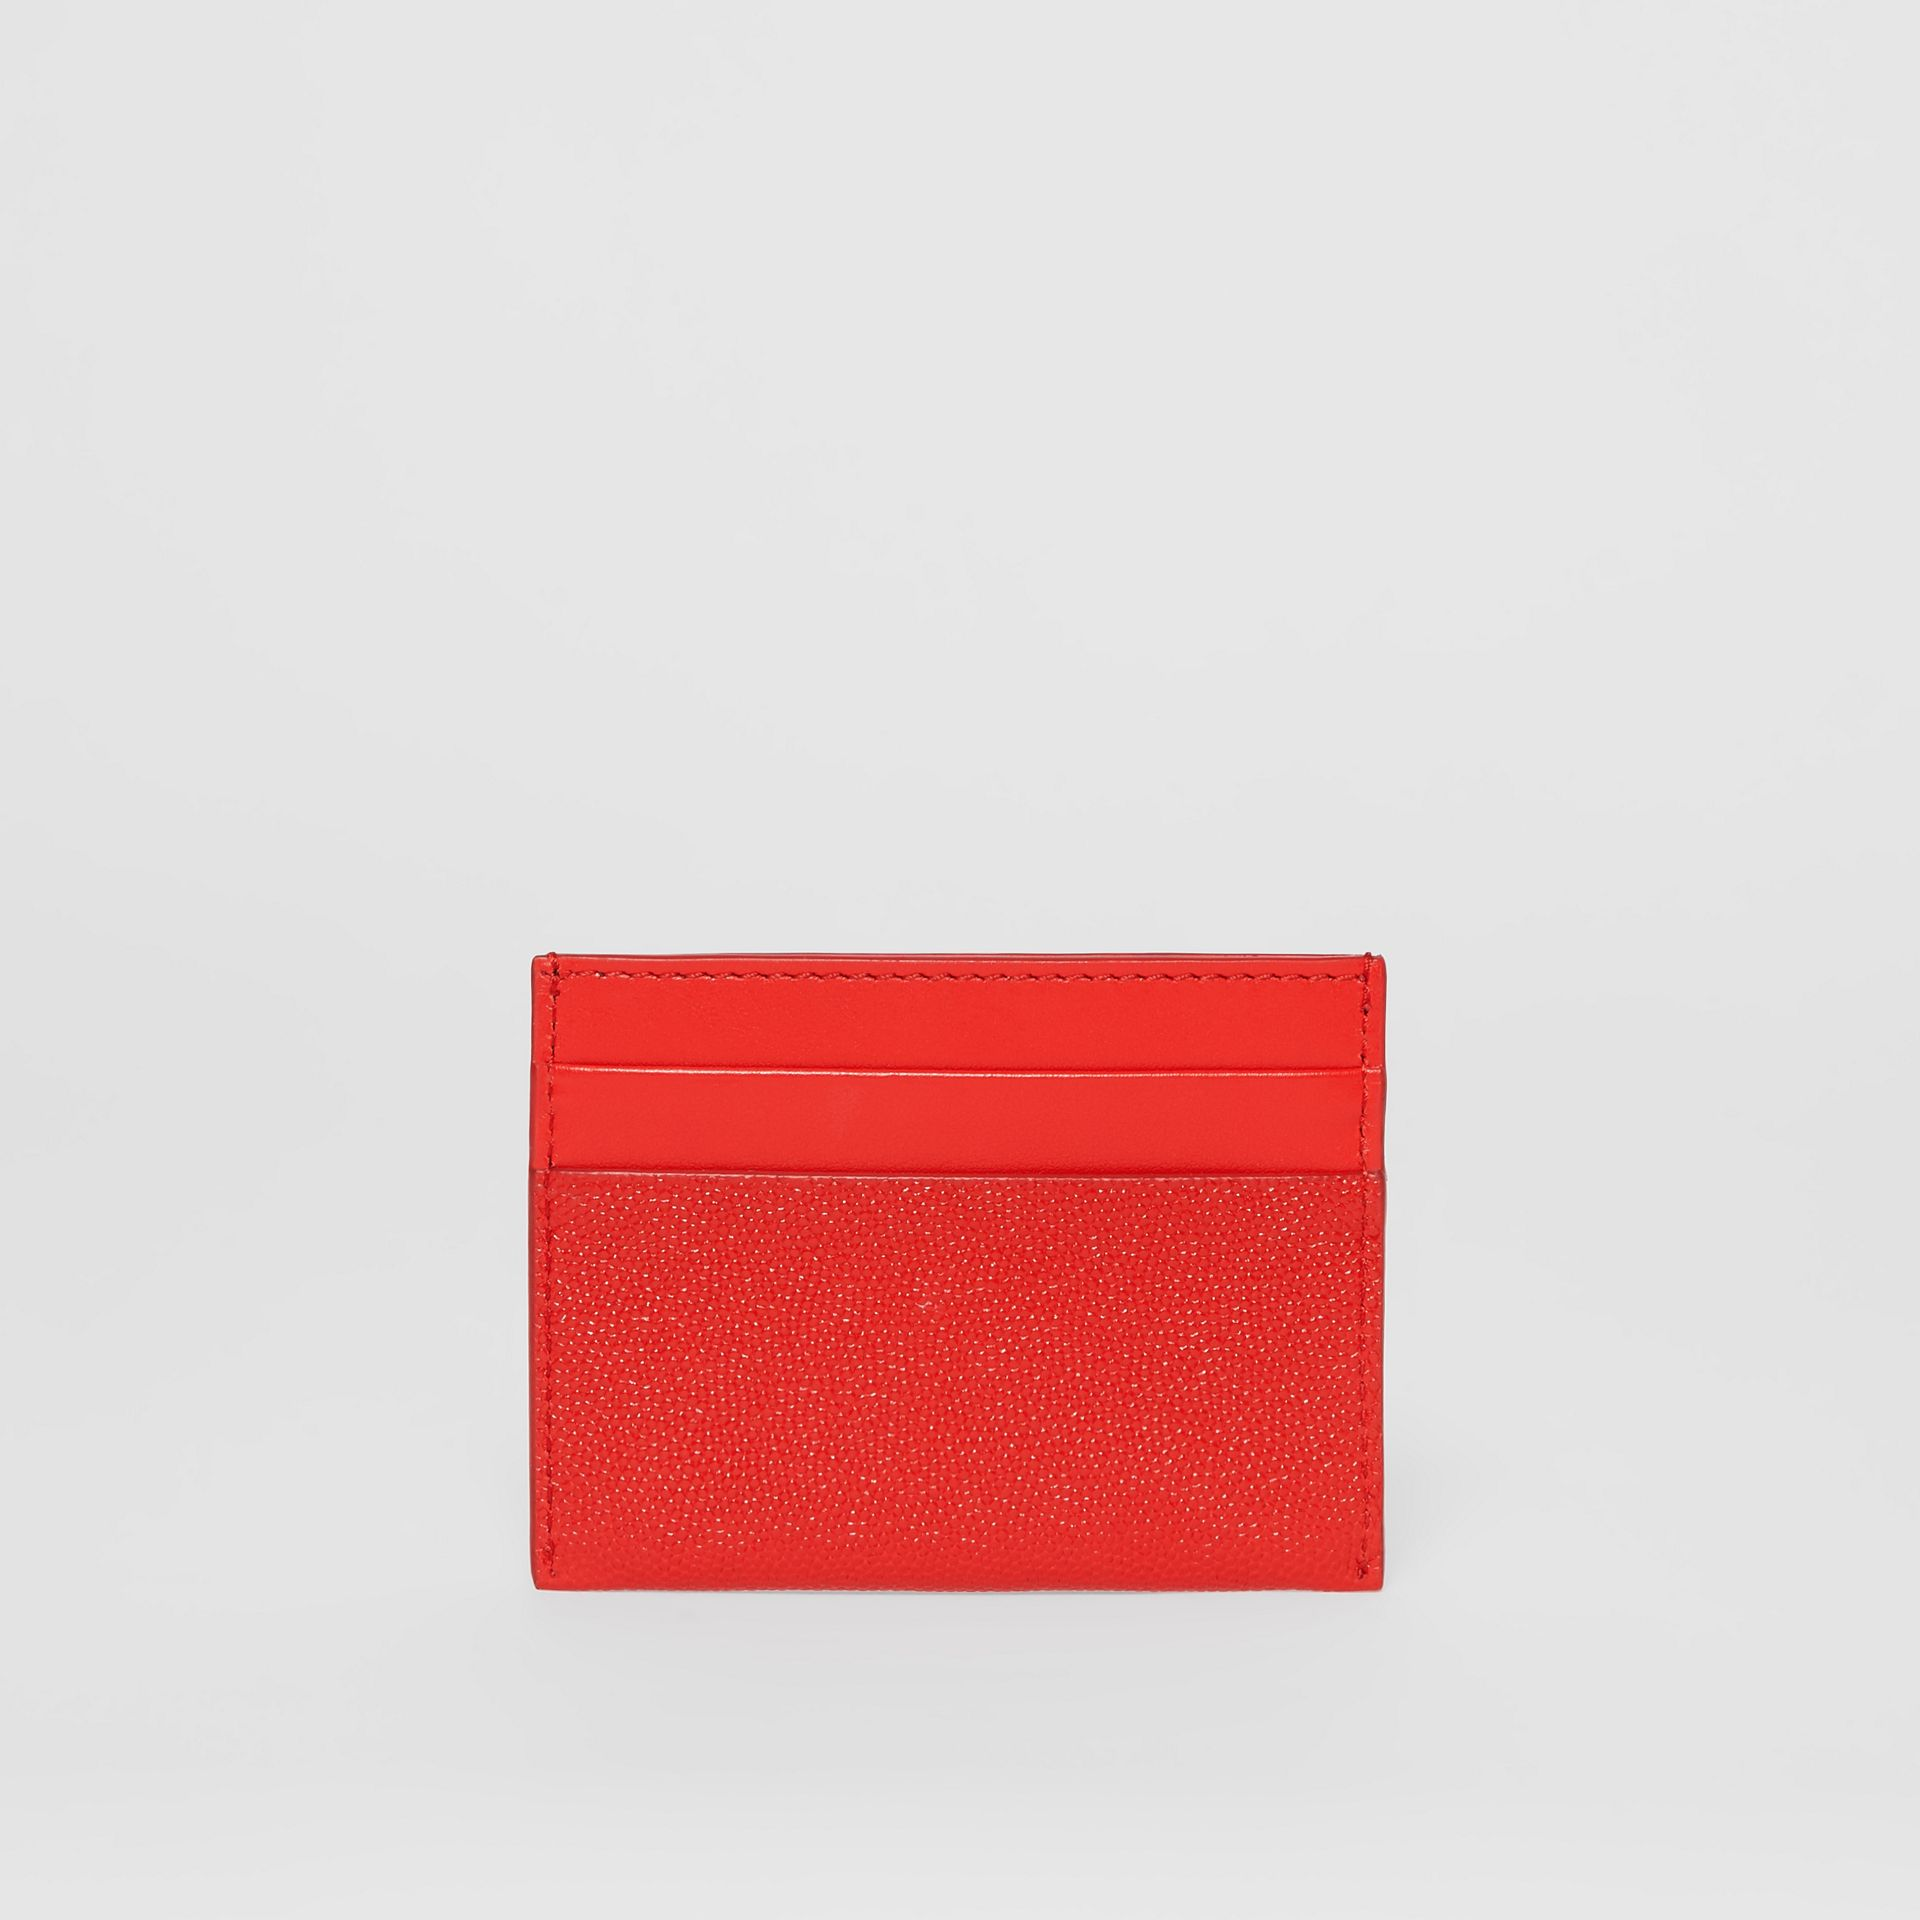 Monogram Motif Leather Card Case in Bright Red - Women | Burberry Hong Kong S.A.R - gallery image 4